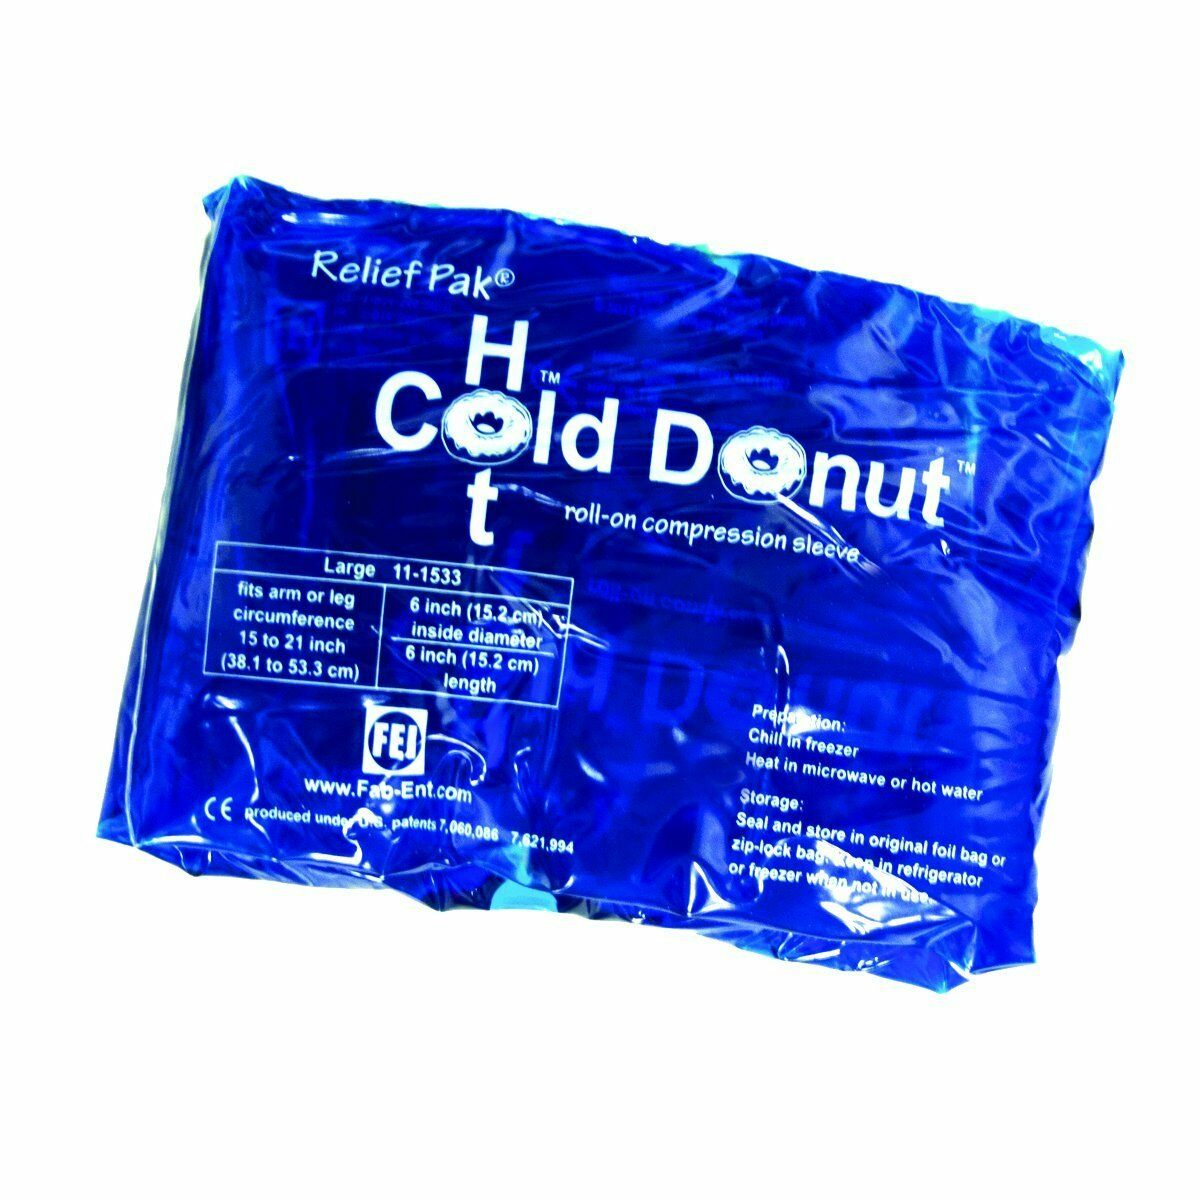 Relief Pack Cold Hot Donut Injury Therapy Heat Ice Sport Surgery Compression 1